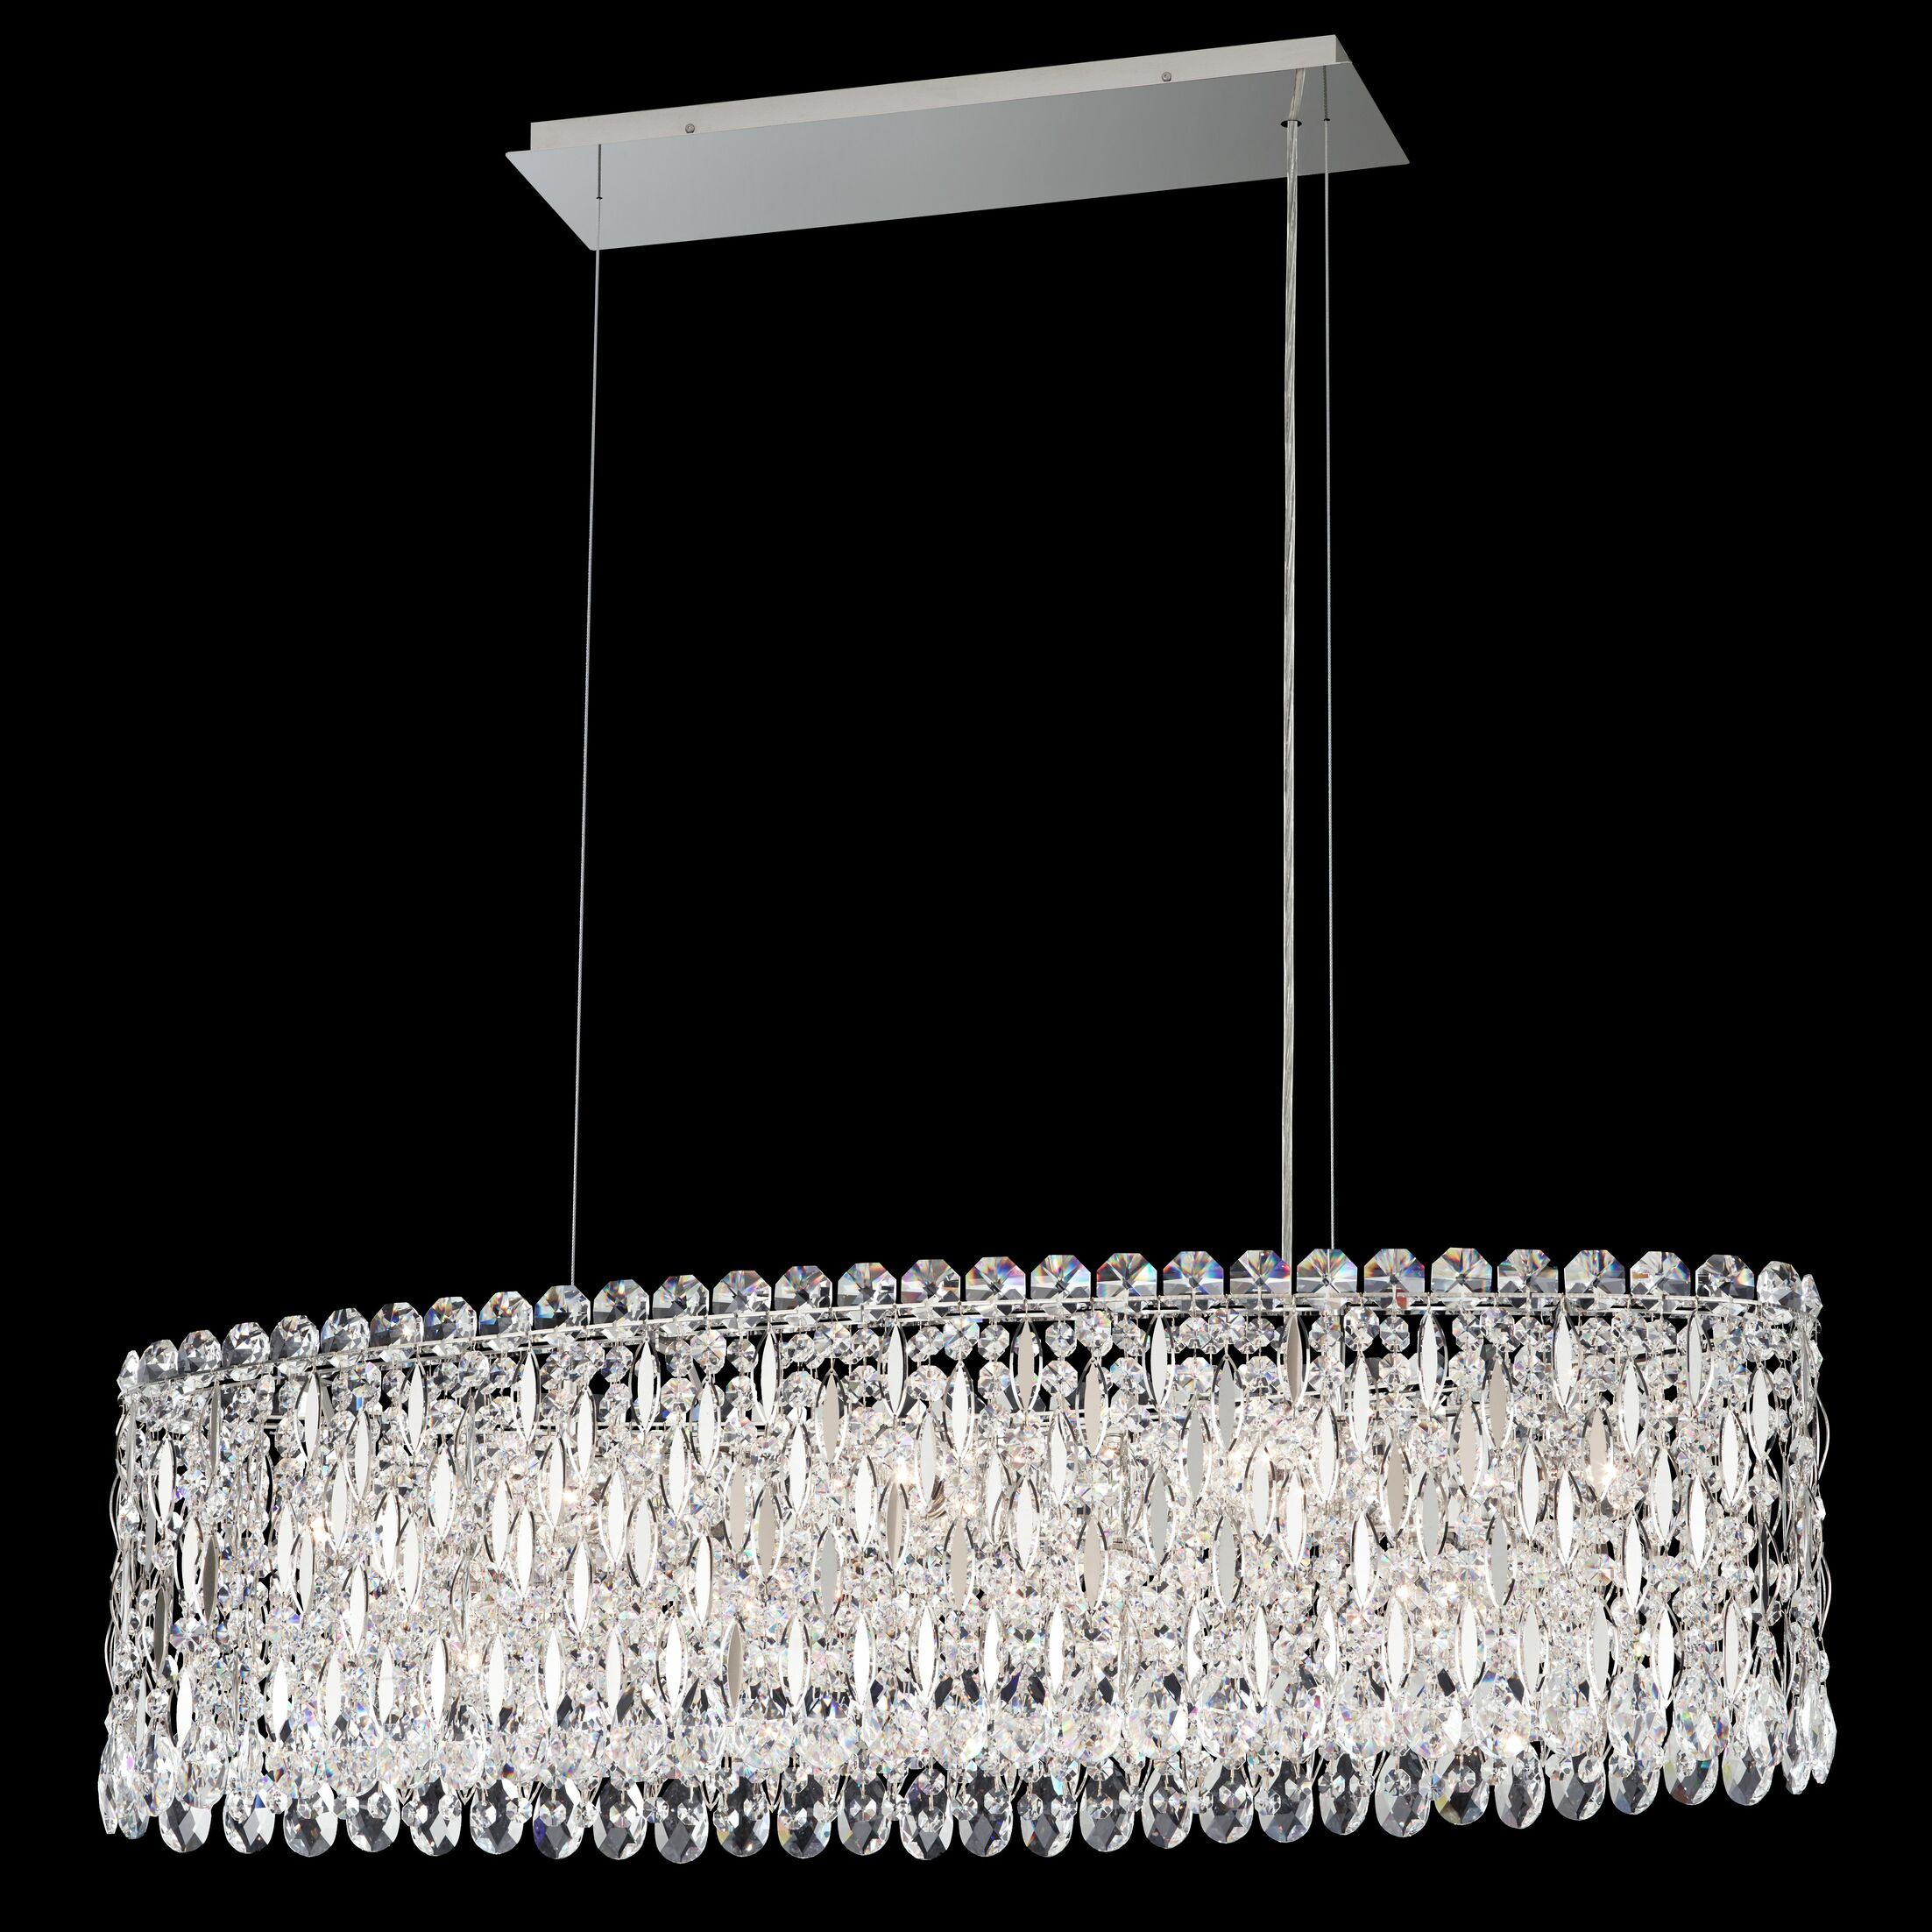 Sarella 12-Light Crystal Chandelier Crystal Grade: Spectra, Finish: Antique Silver